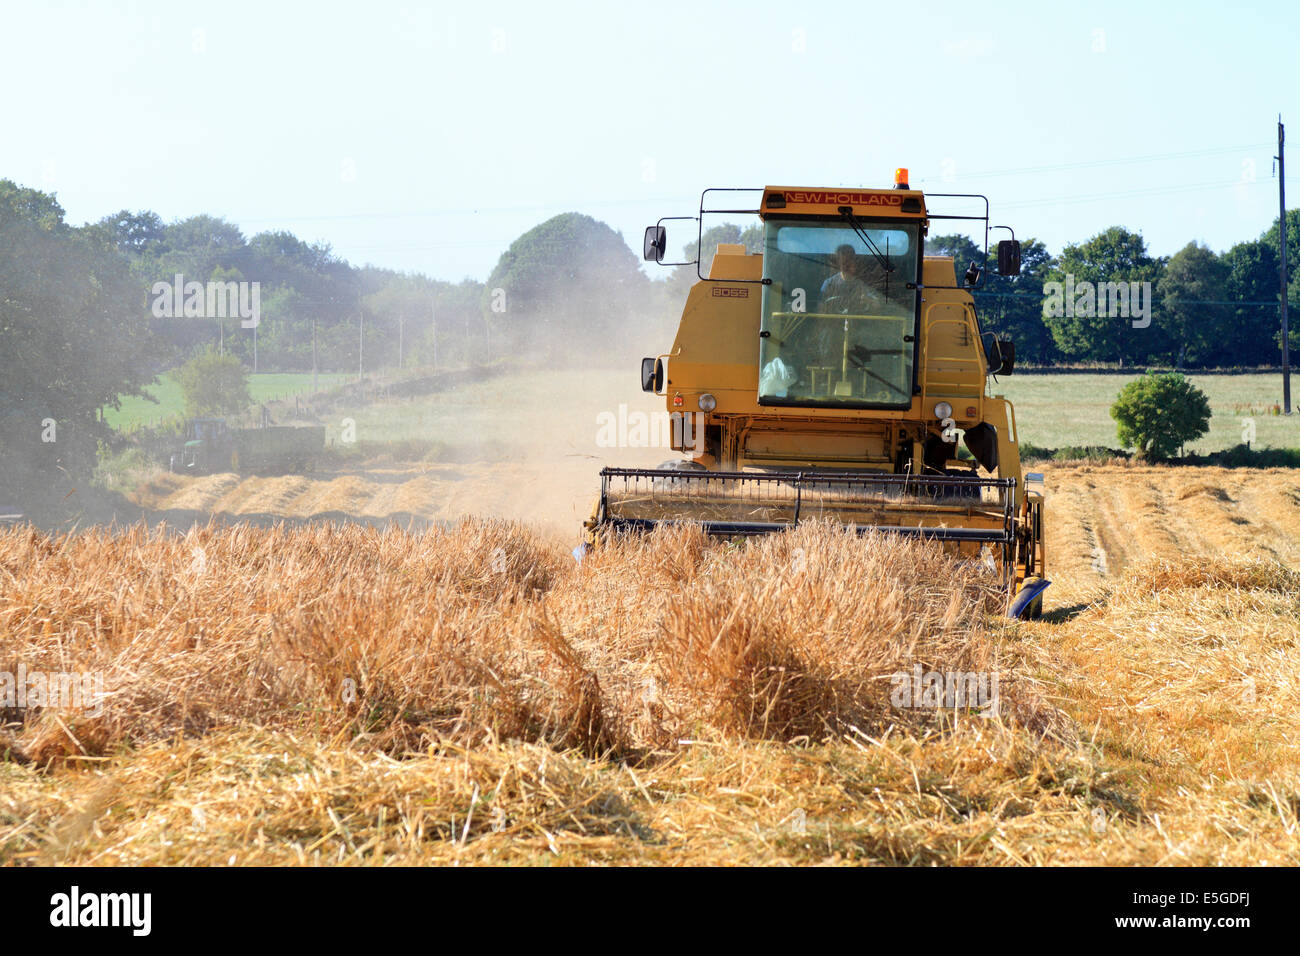 Combine harvester in a crop field in Honley, Holmfirth, West Yorkshire, England, UK. - Stock Image